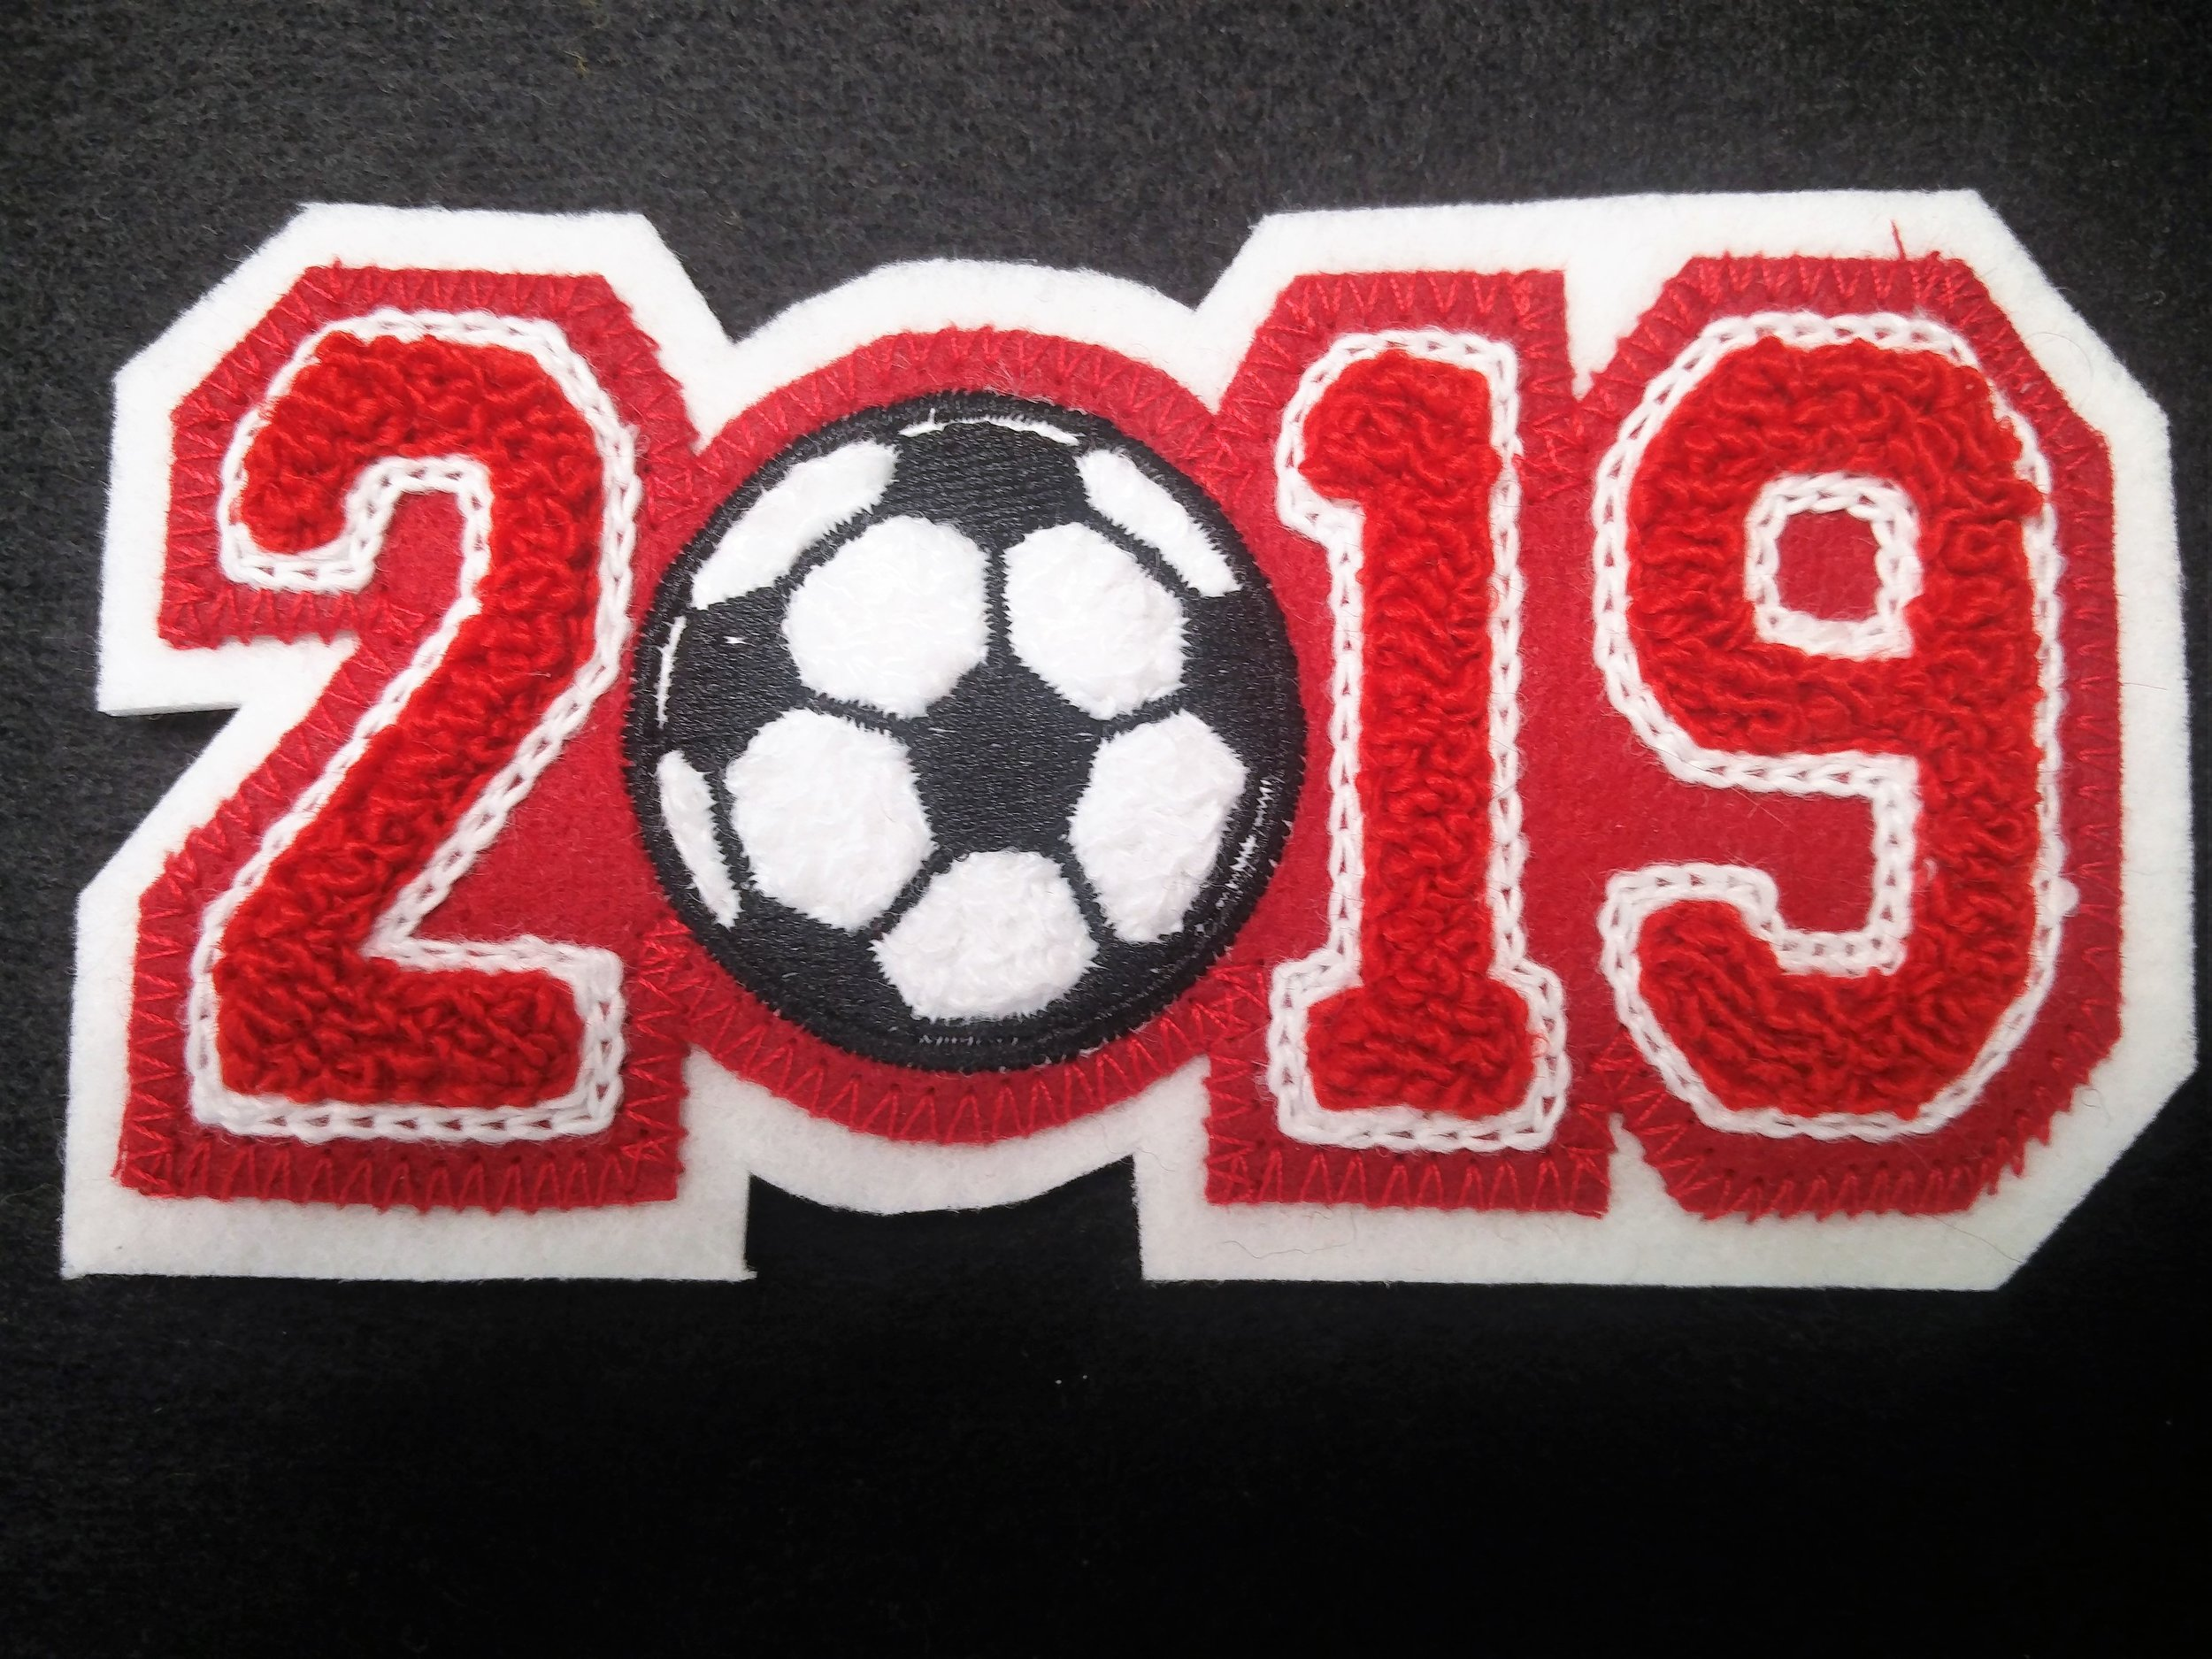 Year of Graduation - The year can be customized with graphics from the program of your choosing.